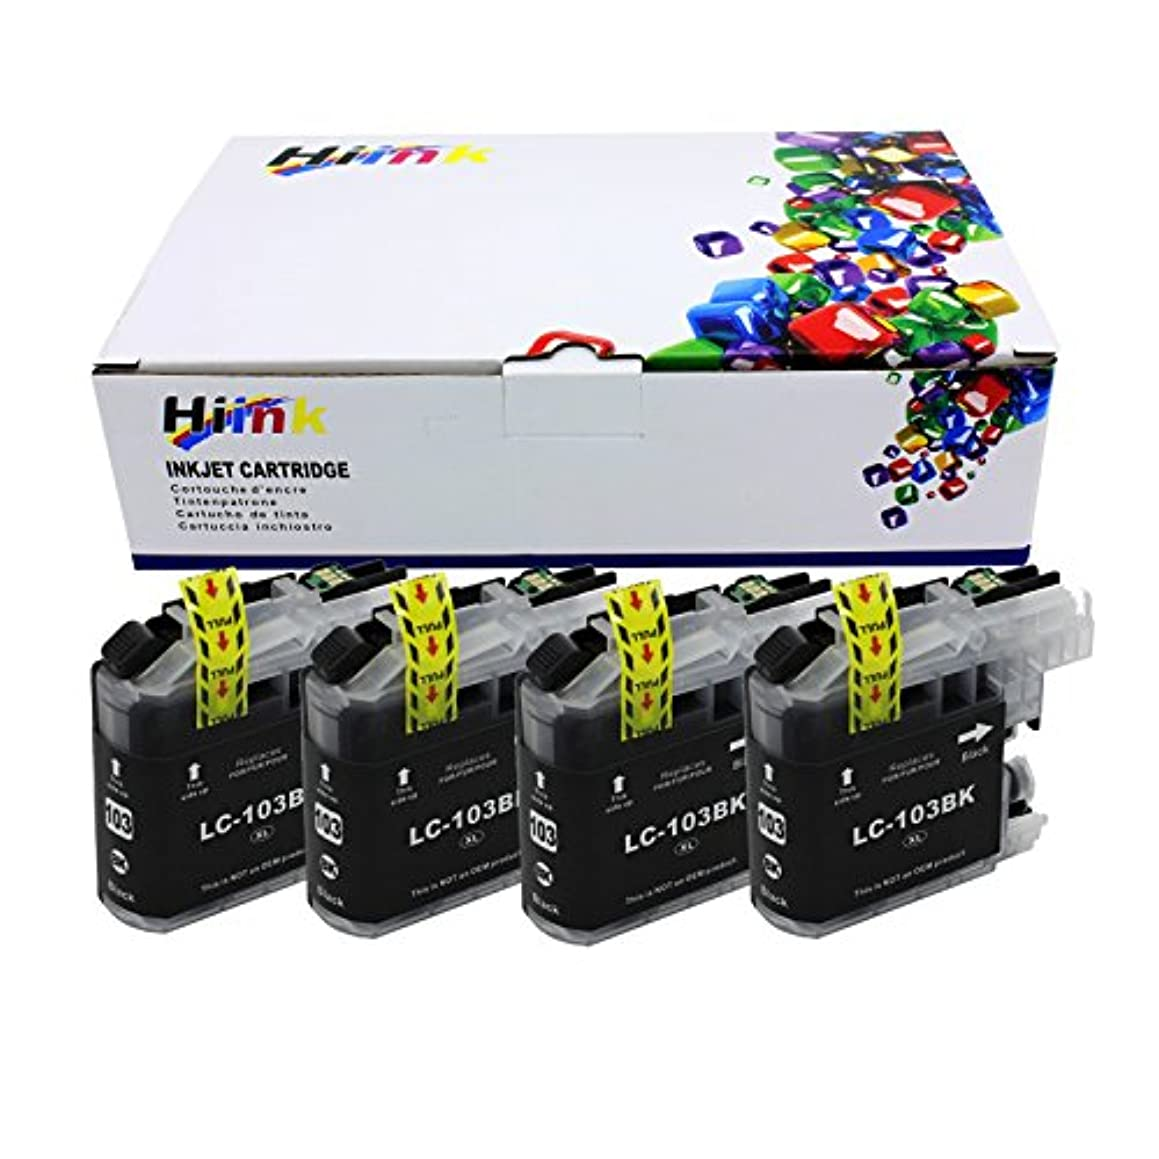 HIINK LC103XL Ink Cartridge Replacement for Brother LC-103 MFC-J245 MFC-J285DW MFC-J450DW MFC-J475DW MFC-J650DW MFC-J870DW MFC-J875DW Printer, Pack of 4 - Black